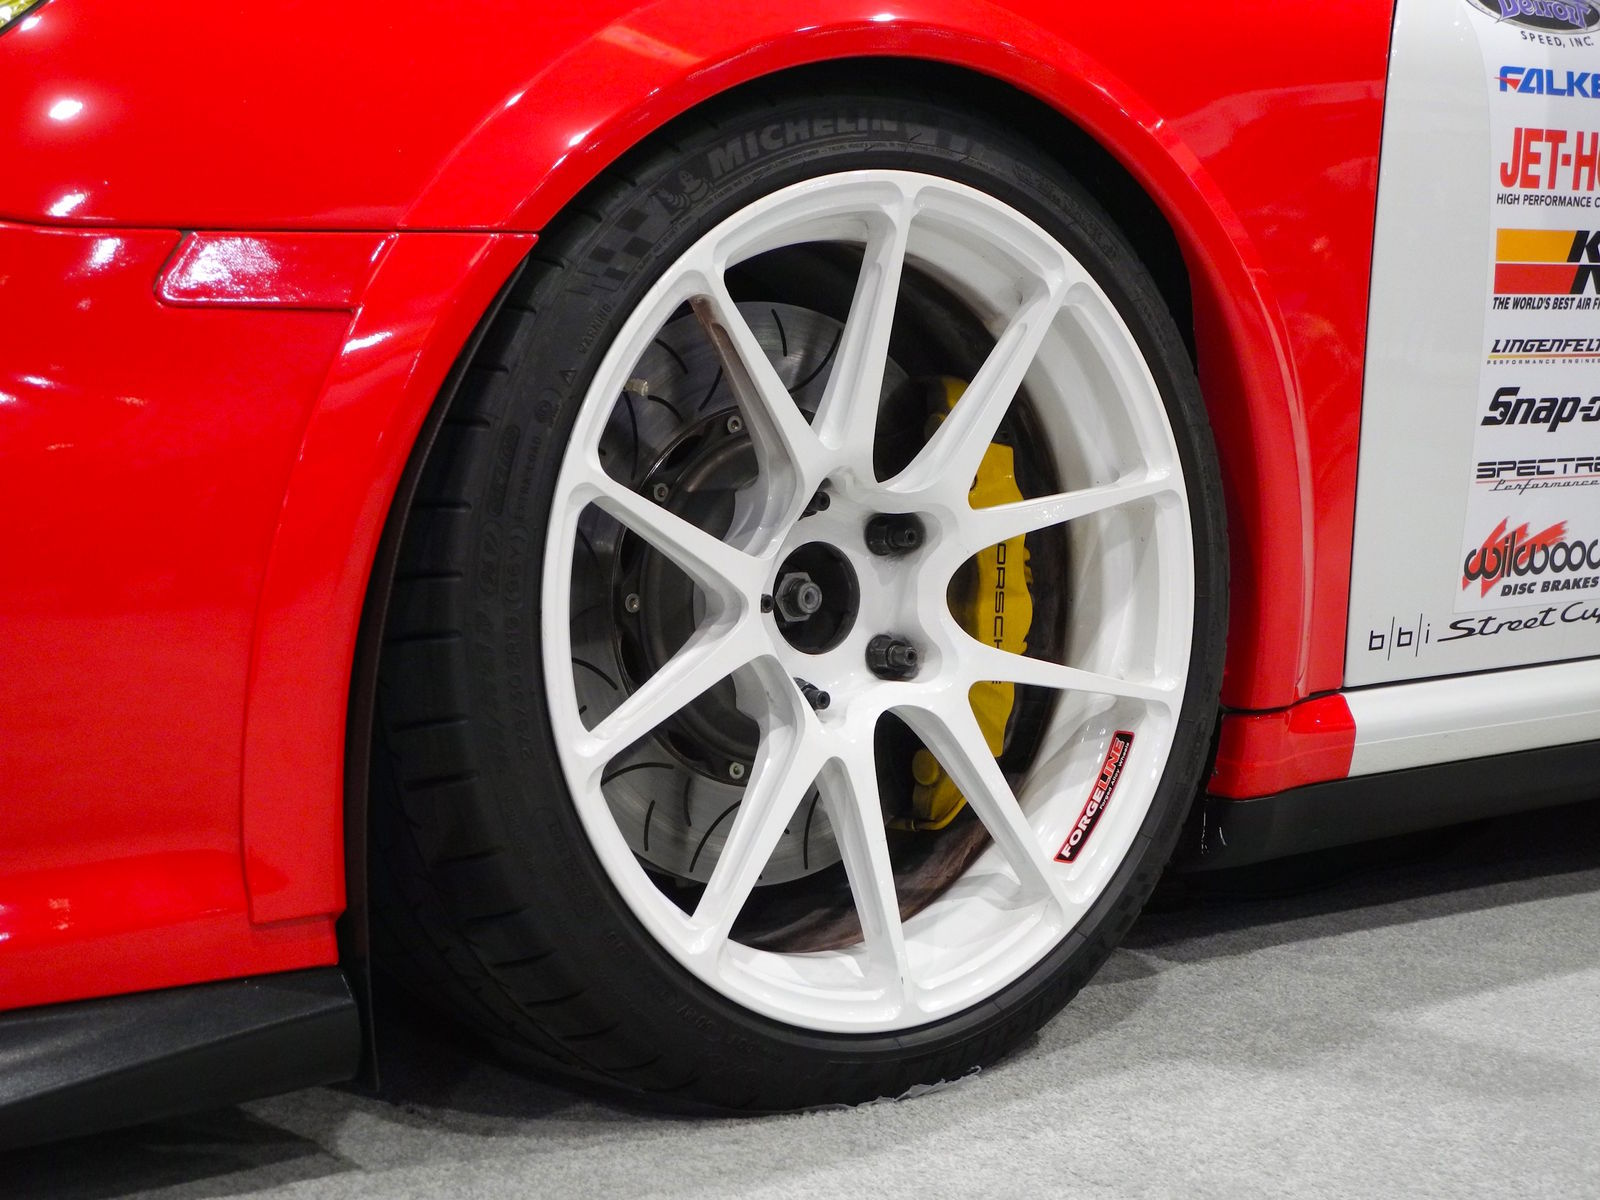 2008 Porsche 911 | BBi Autosport's 997.1 Porsche 911 Turbo on Forgeline 1pc Forged Monoblock GA1R Open Lug Wheels